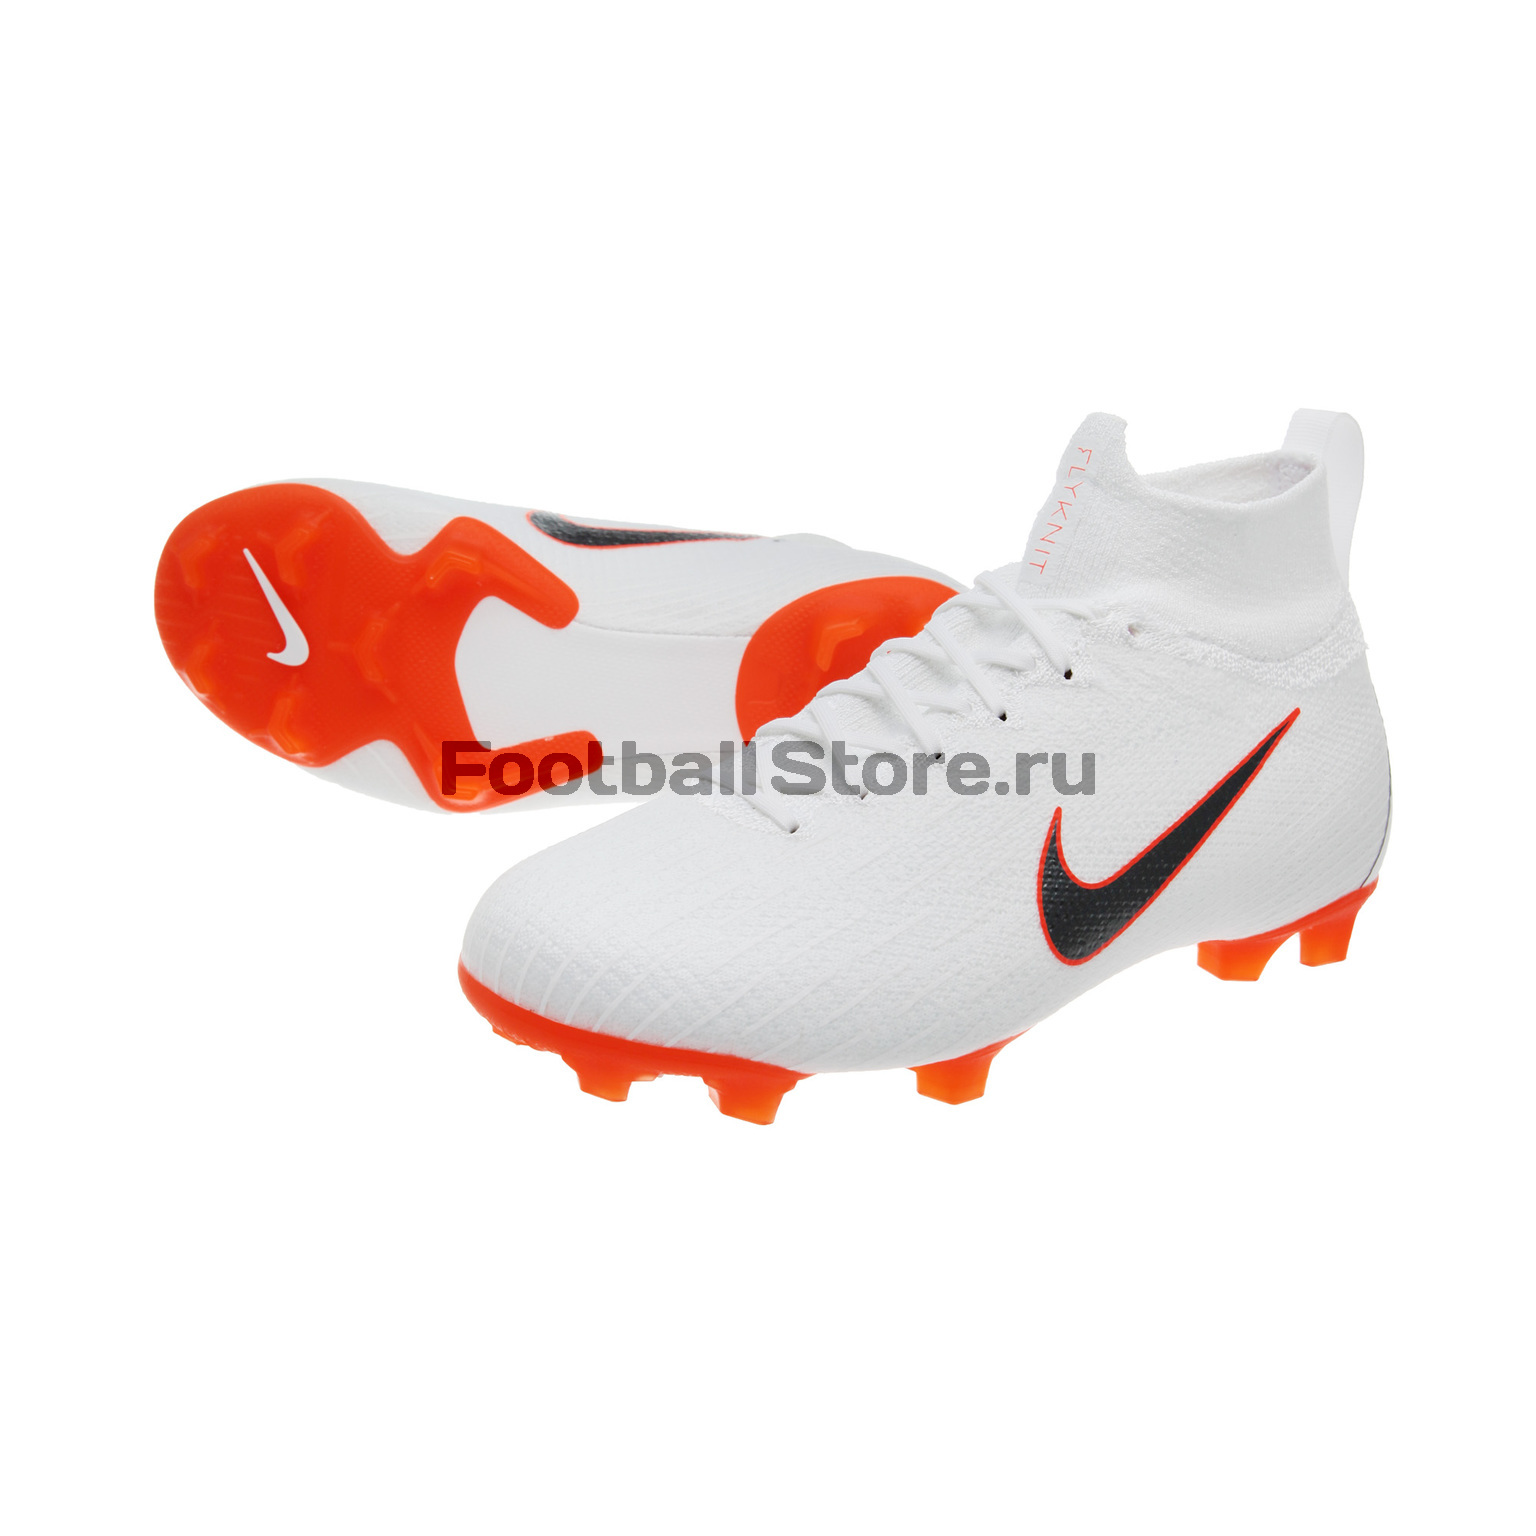 Бутсы детские Nike Superfly 6 Elite FG AH7340-107 бутсы nike superfly 6 elite fg ah7365 060